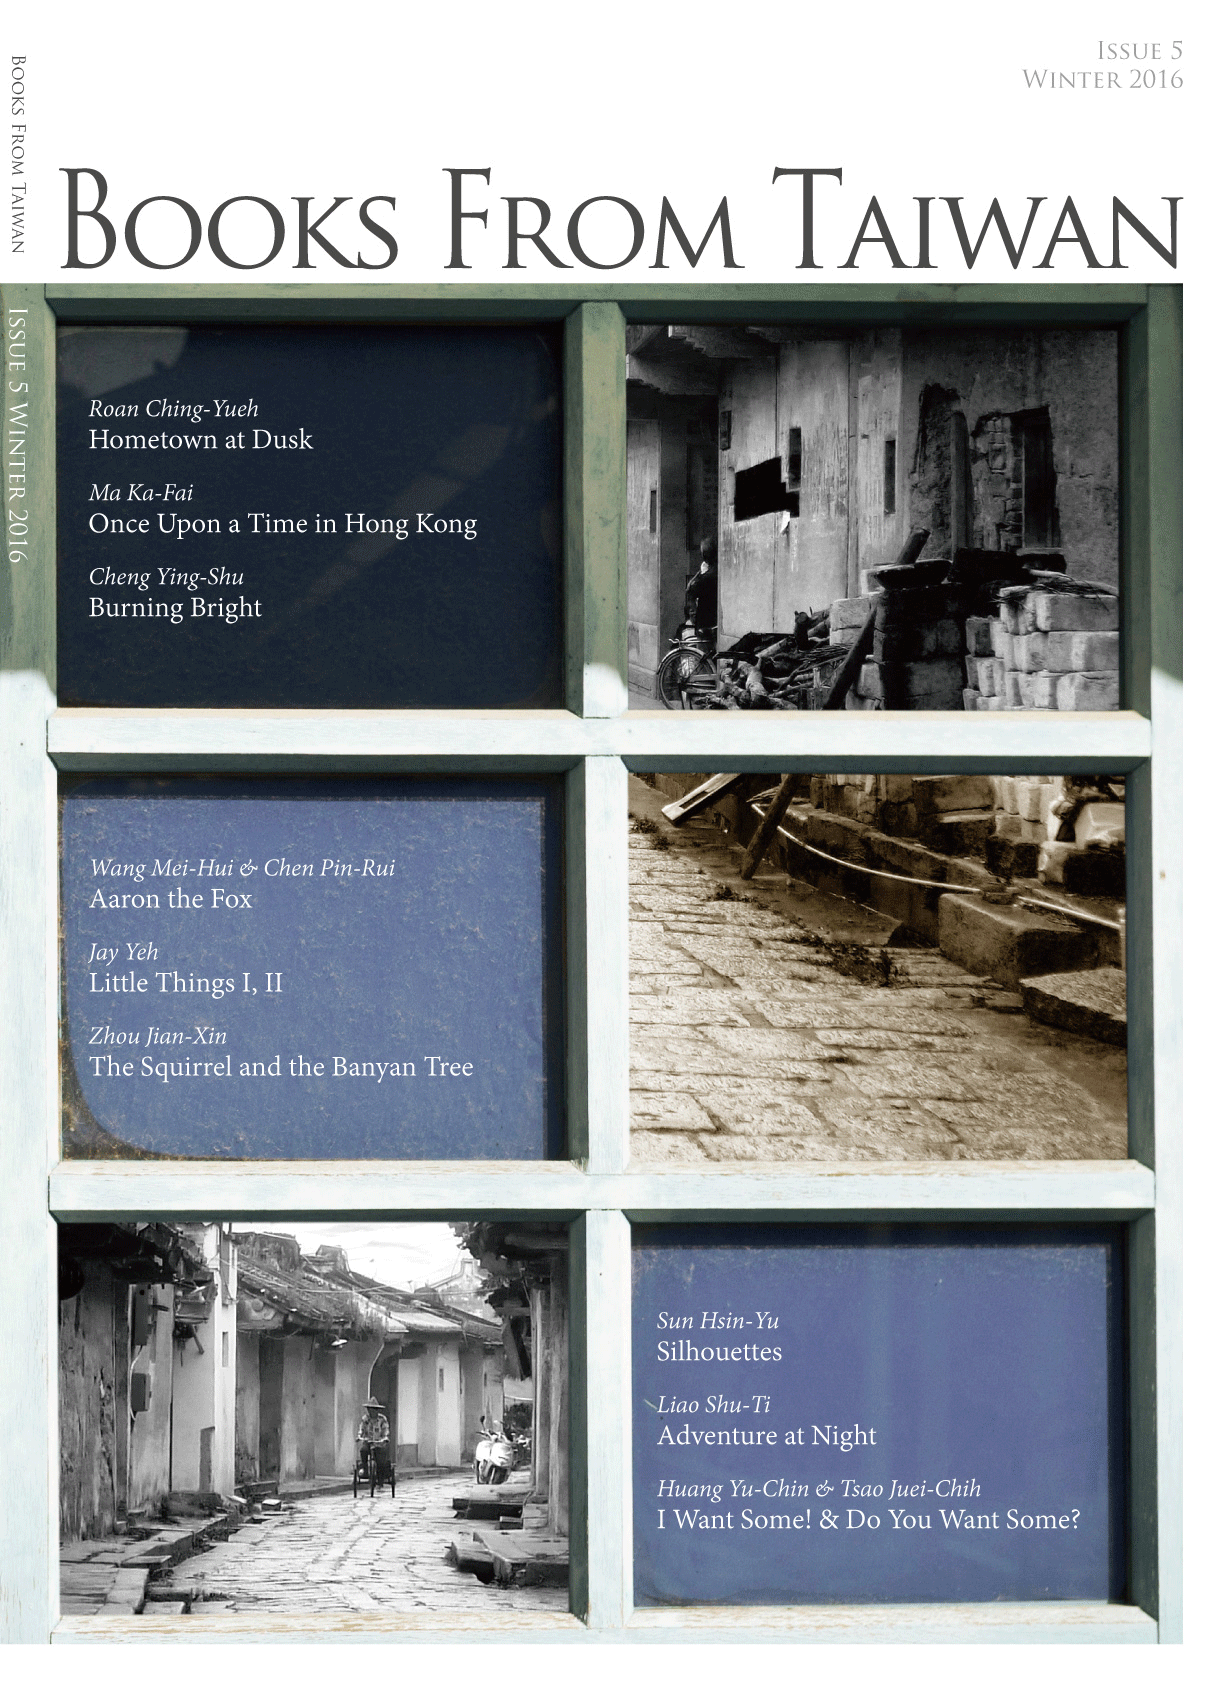 Books from Taiwan Issue 5